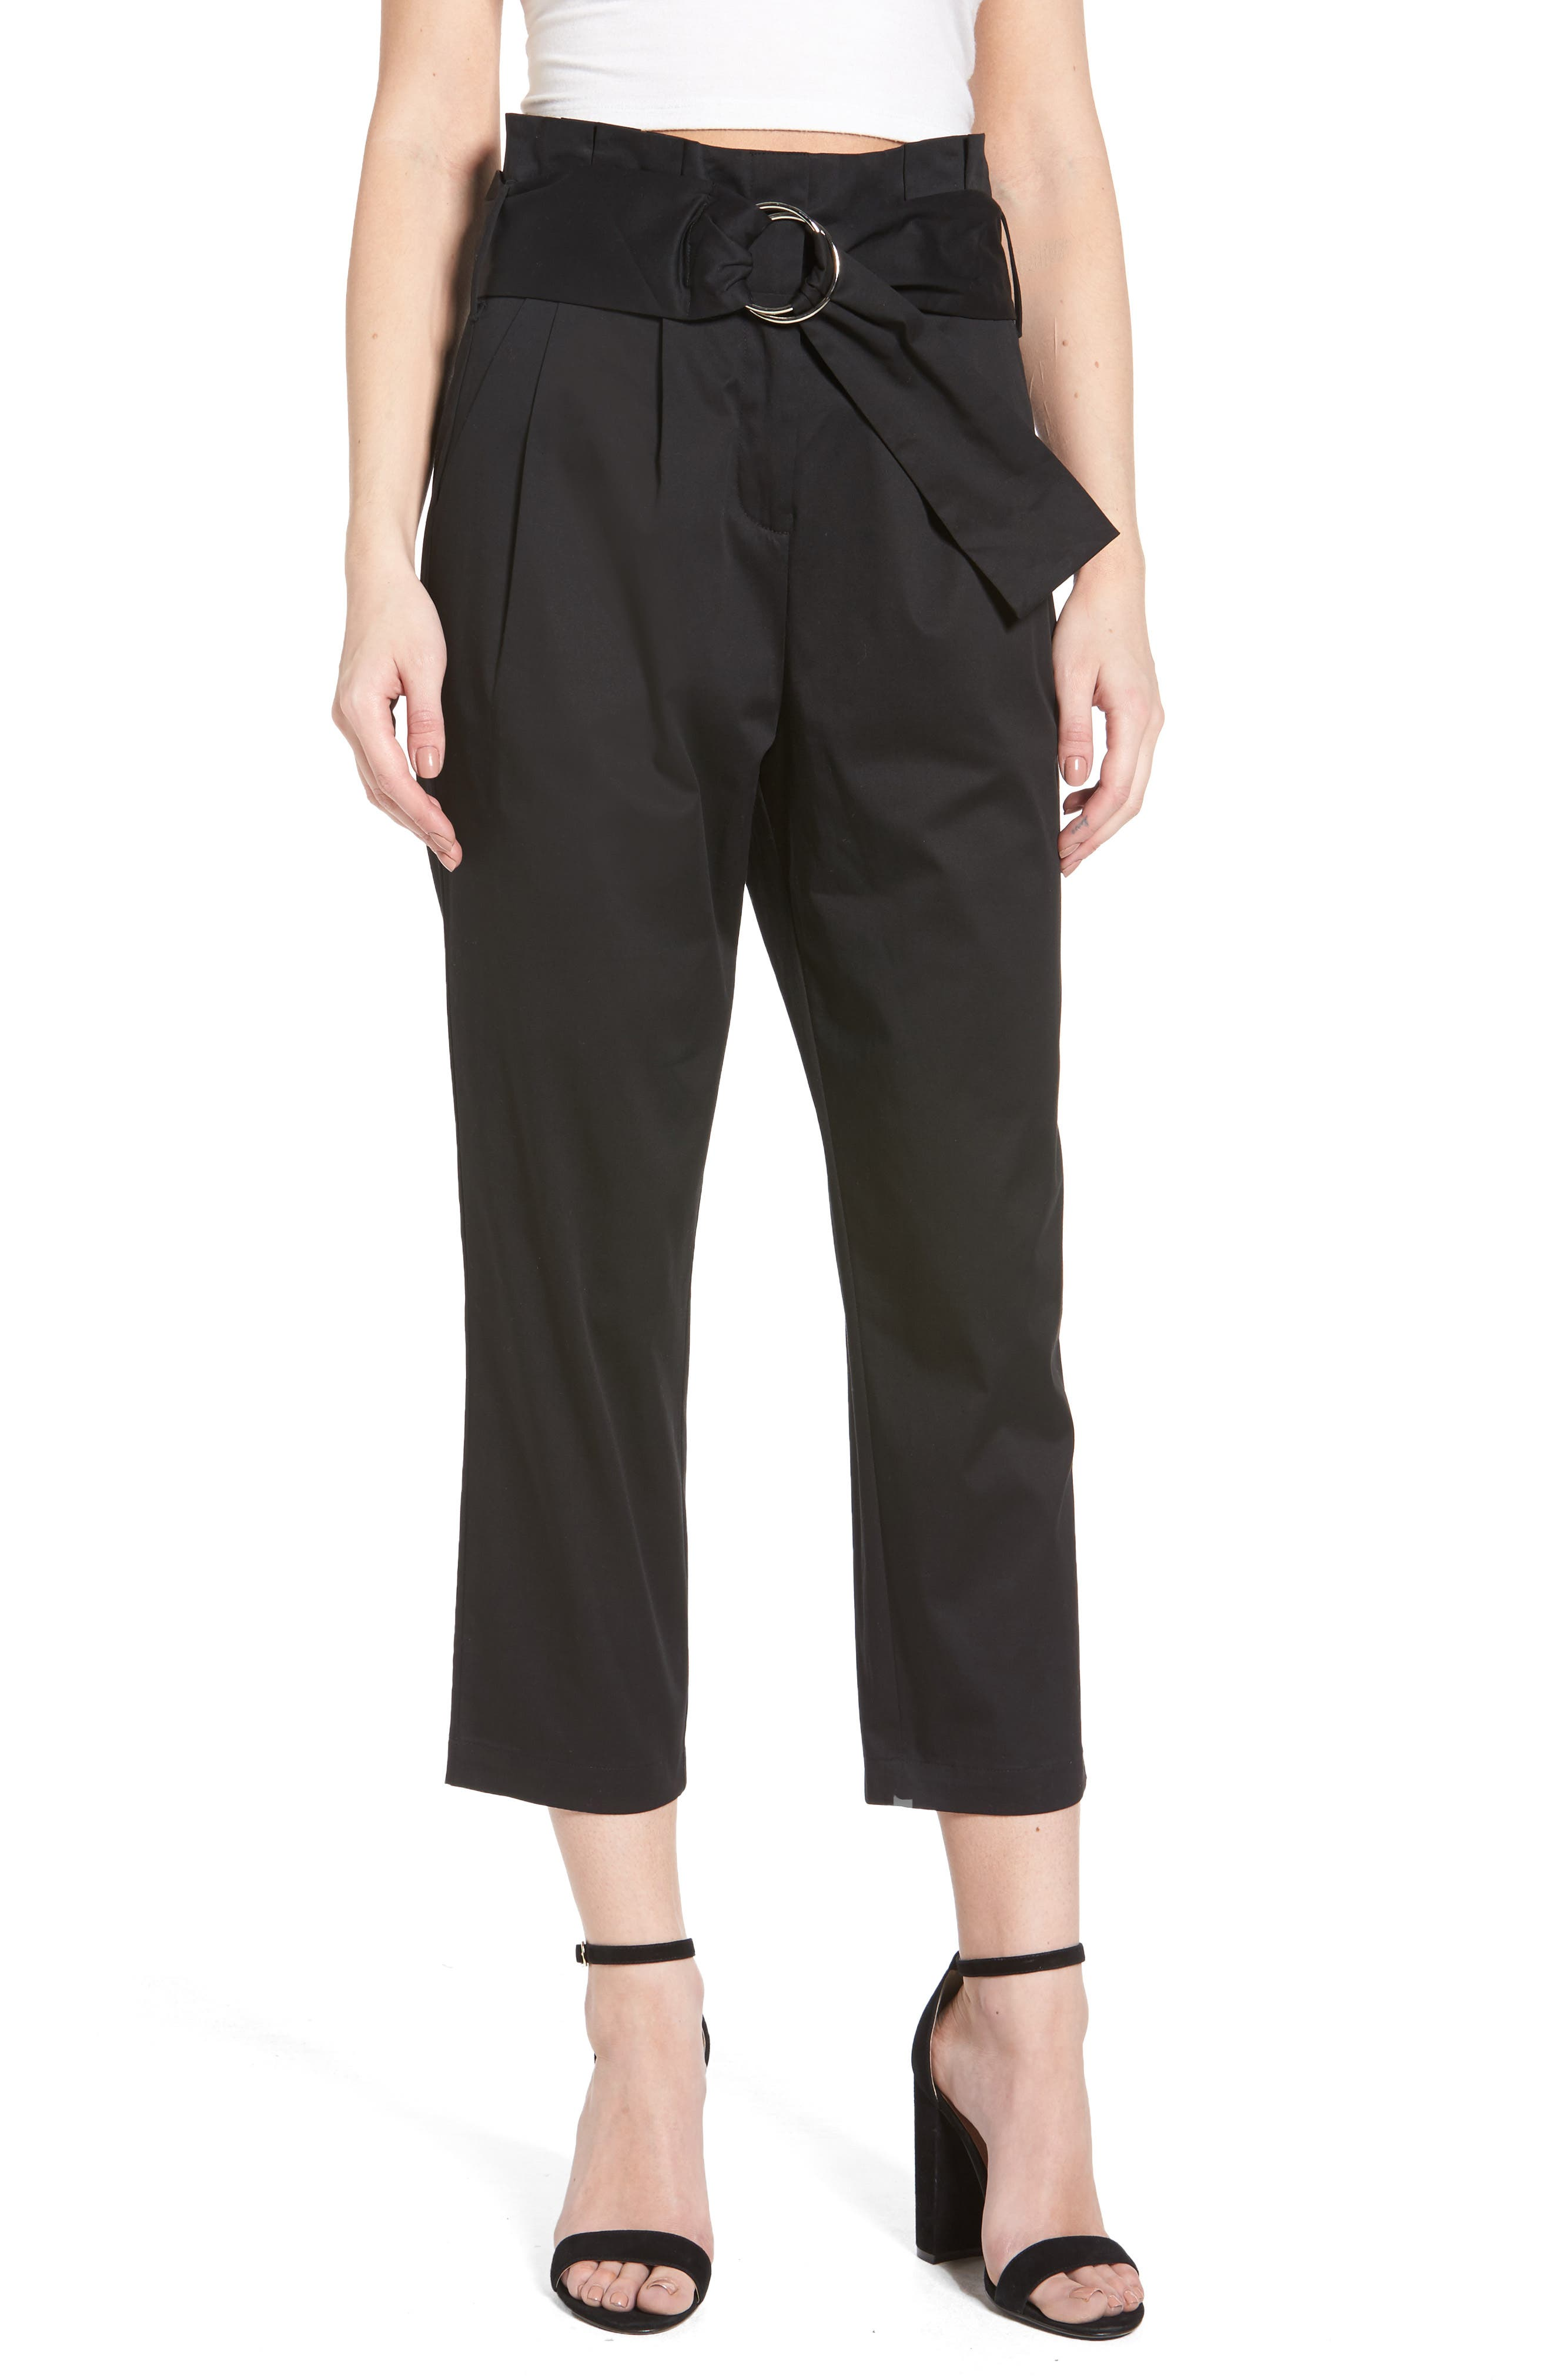 J.O.A. Belted Crop Pants